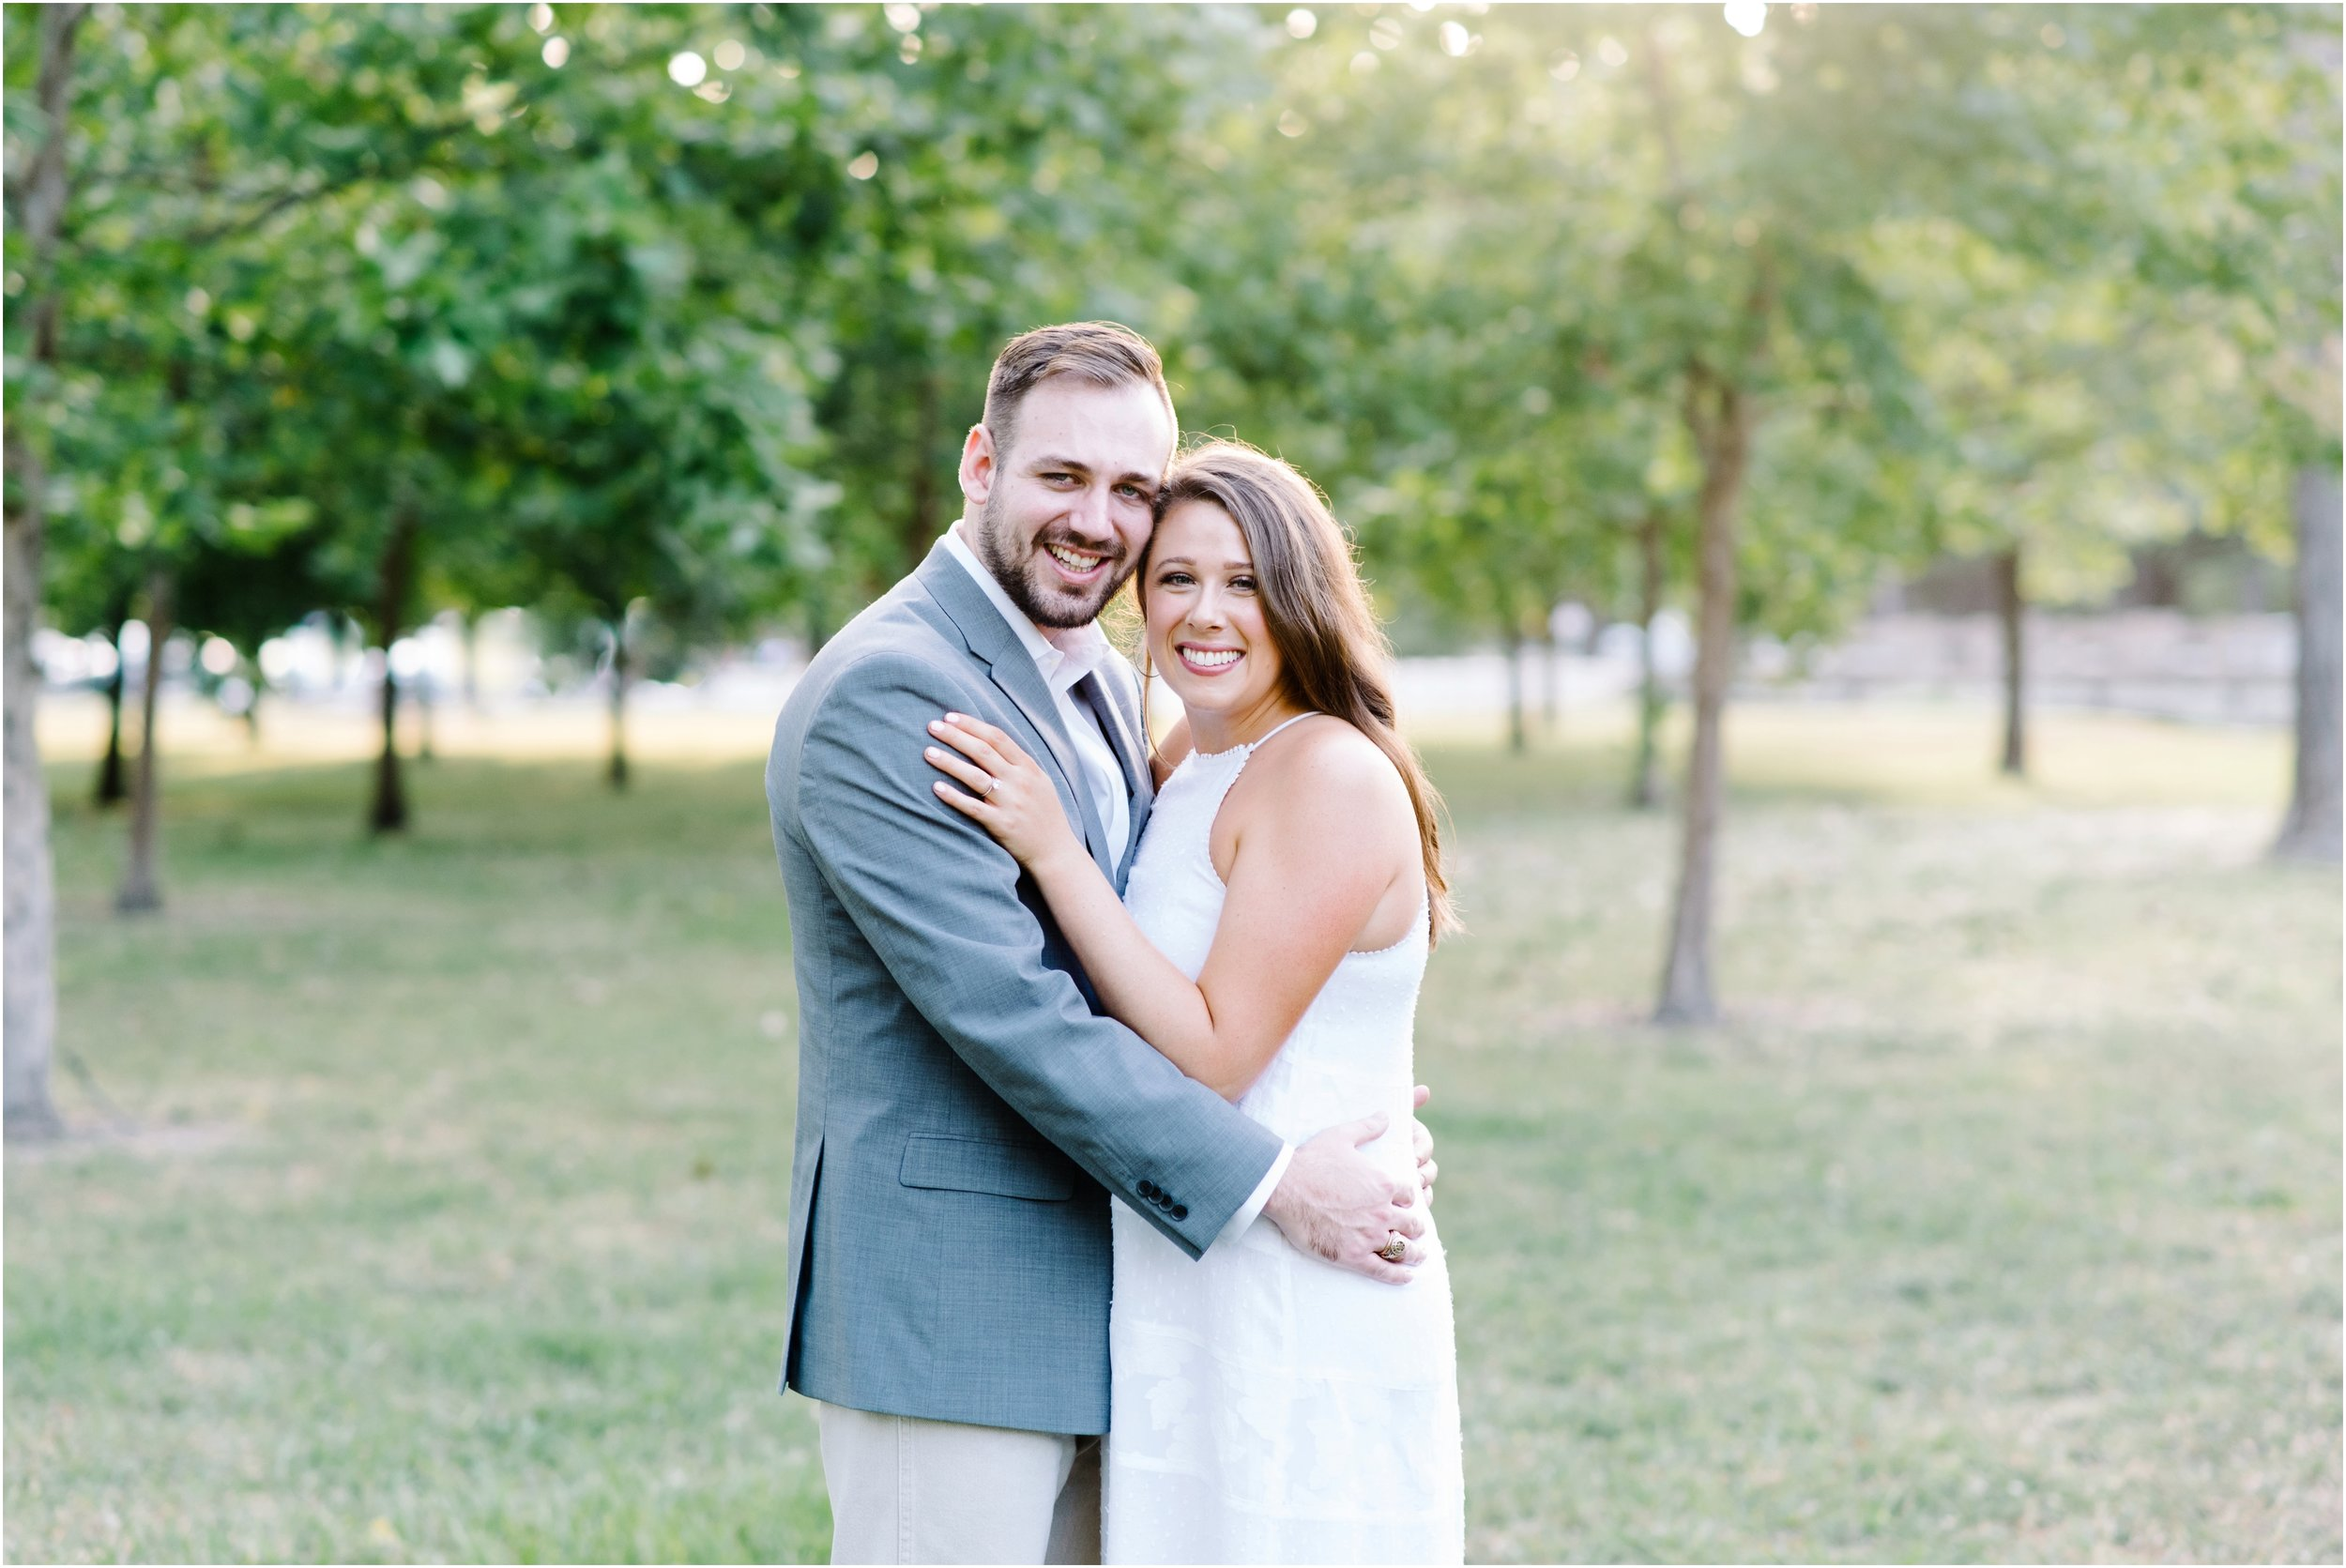 dallasweddingphotographer_texasweddingphotographer_mattandjulieweddings_modernfortworth_fortworthweddingphotographer_0890.jpg